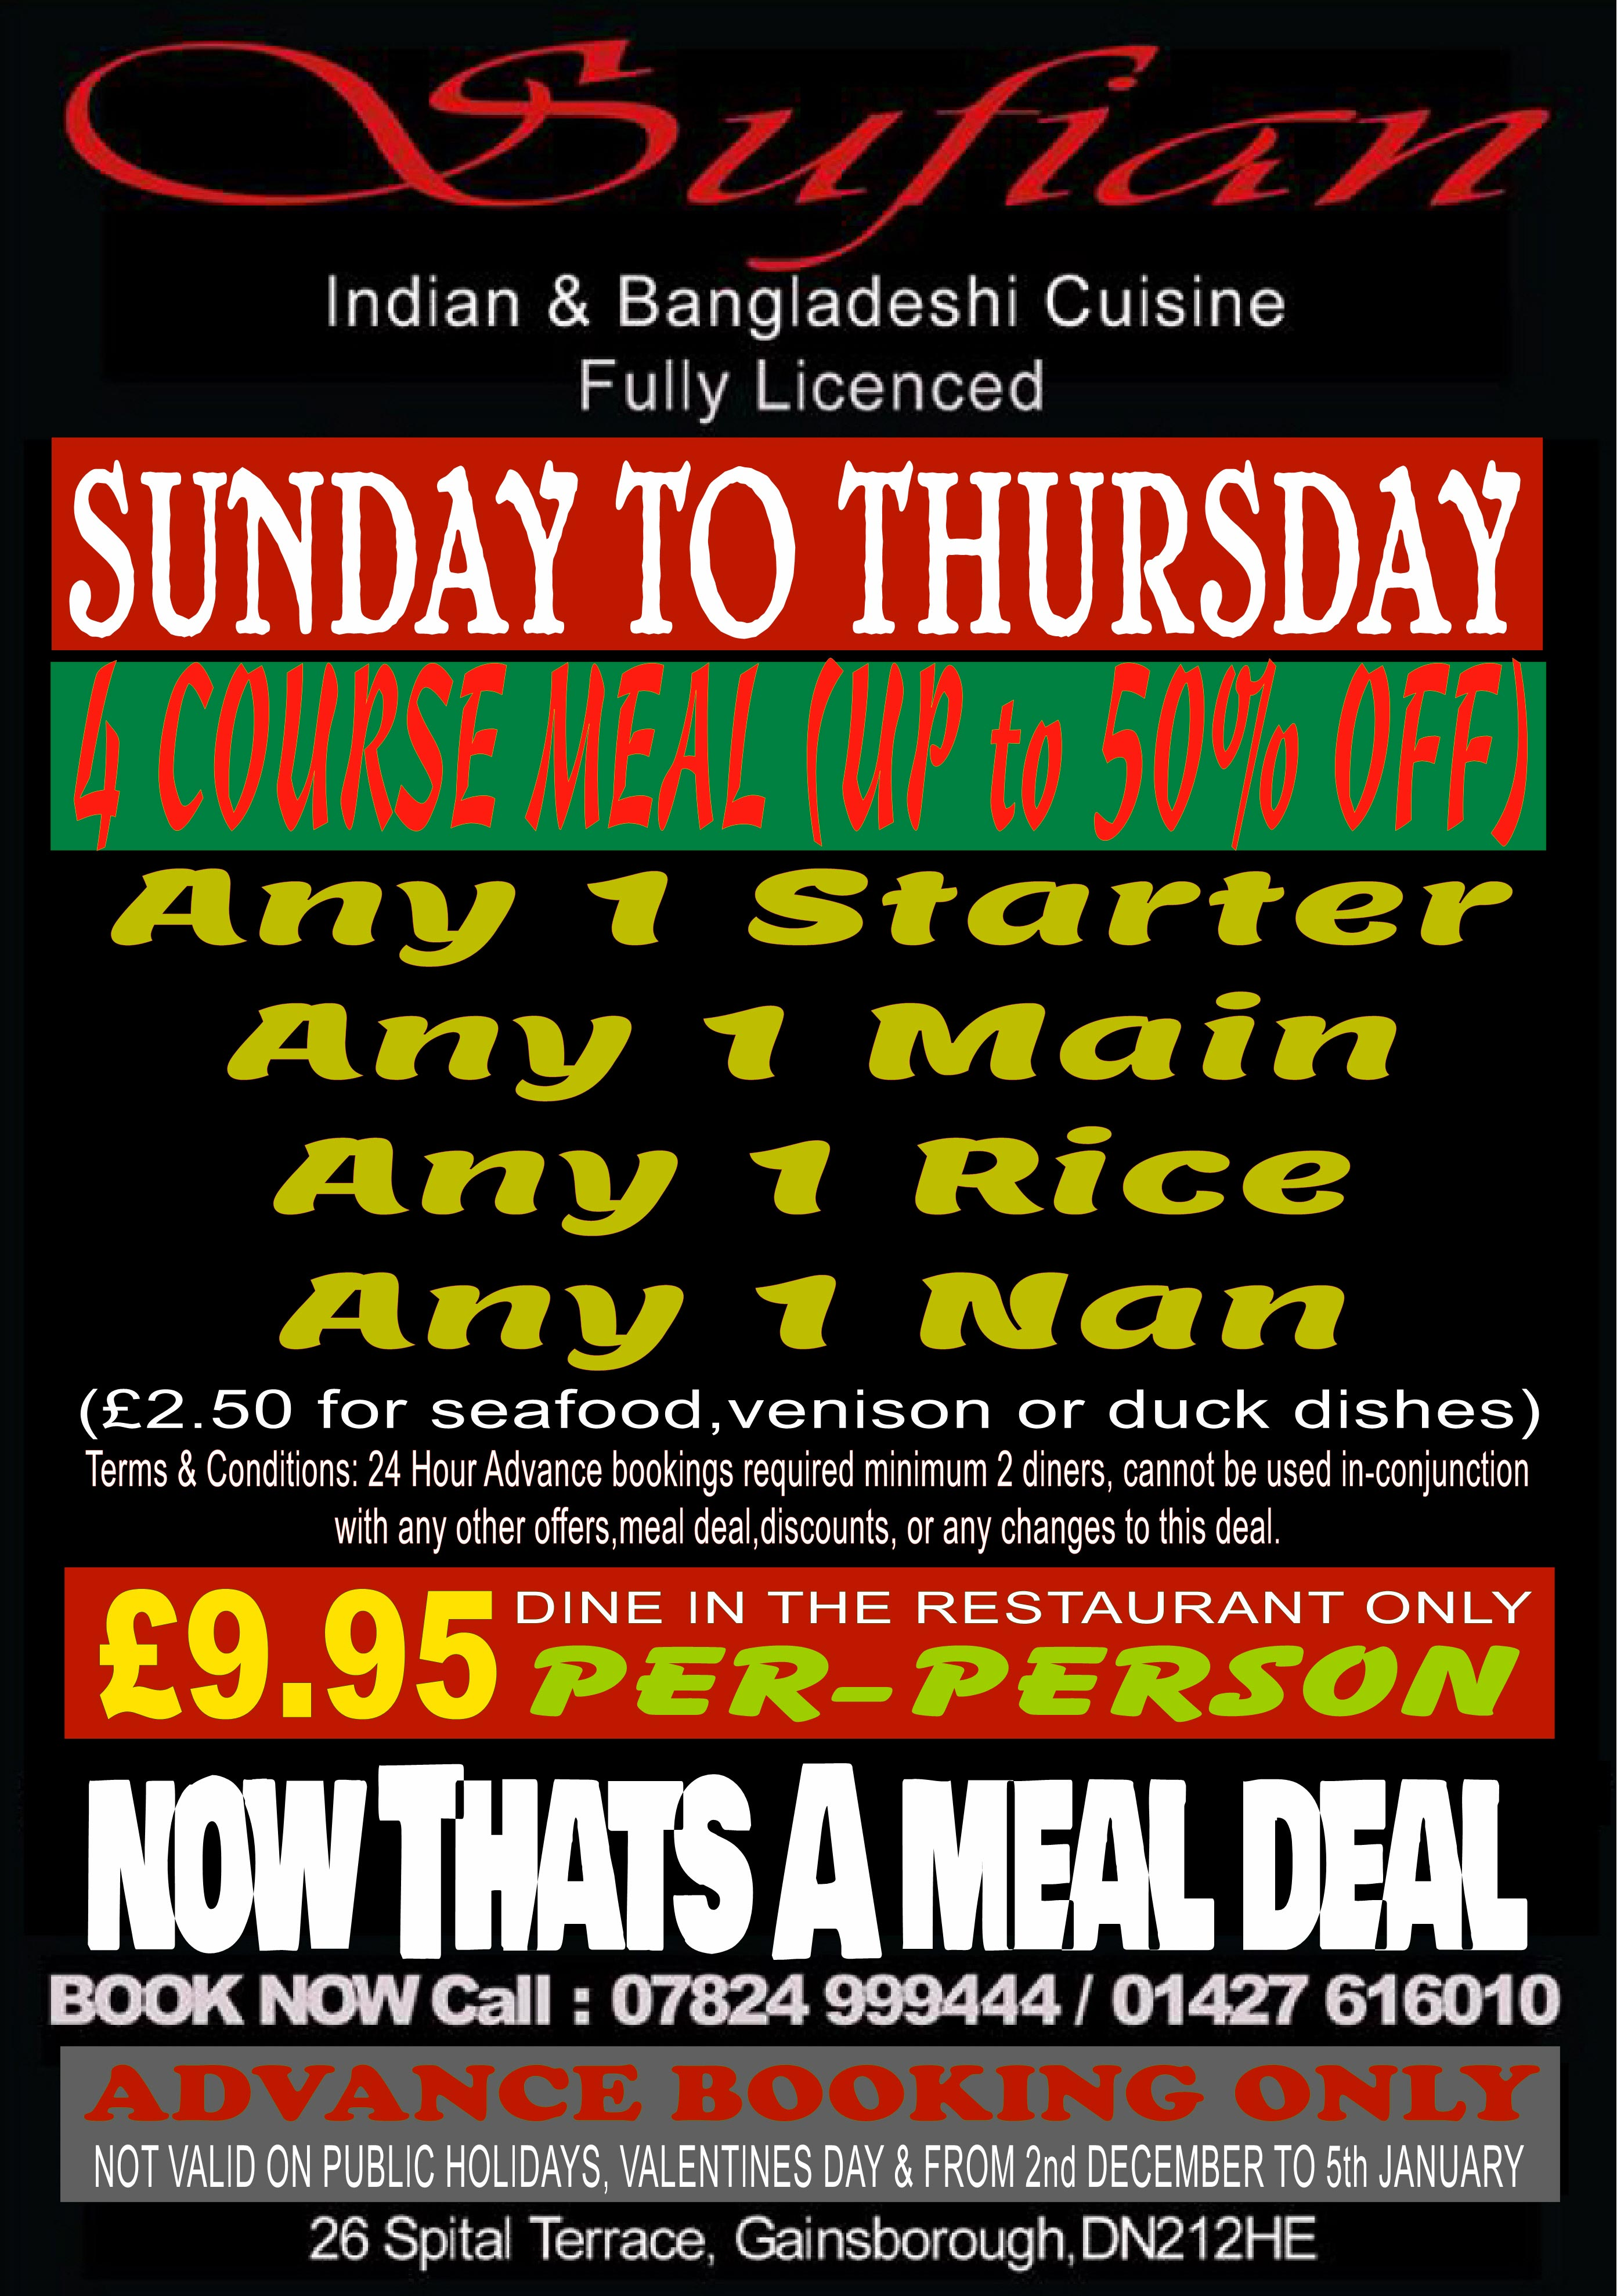 4 Course meal offer at Sufian Cuisine